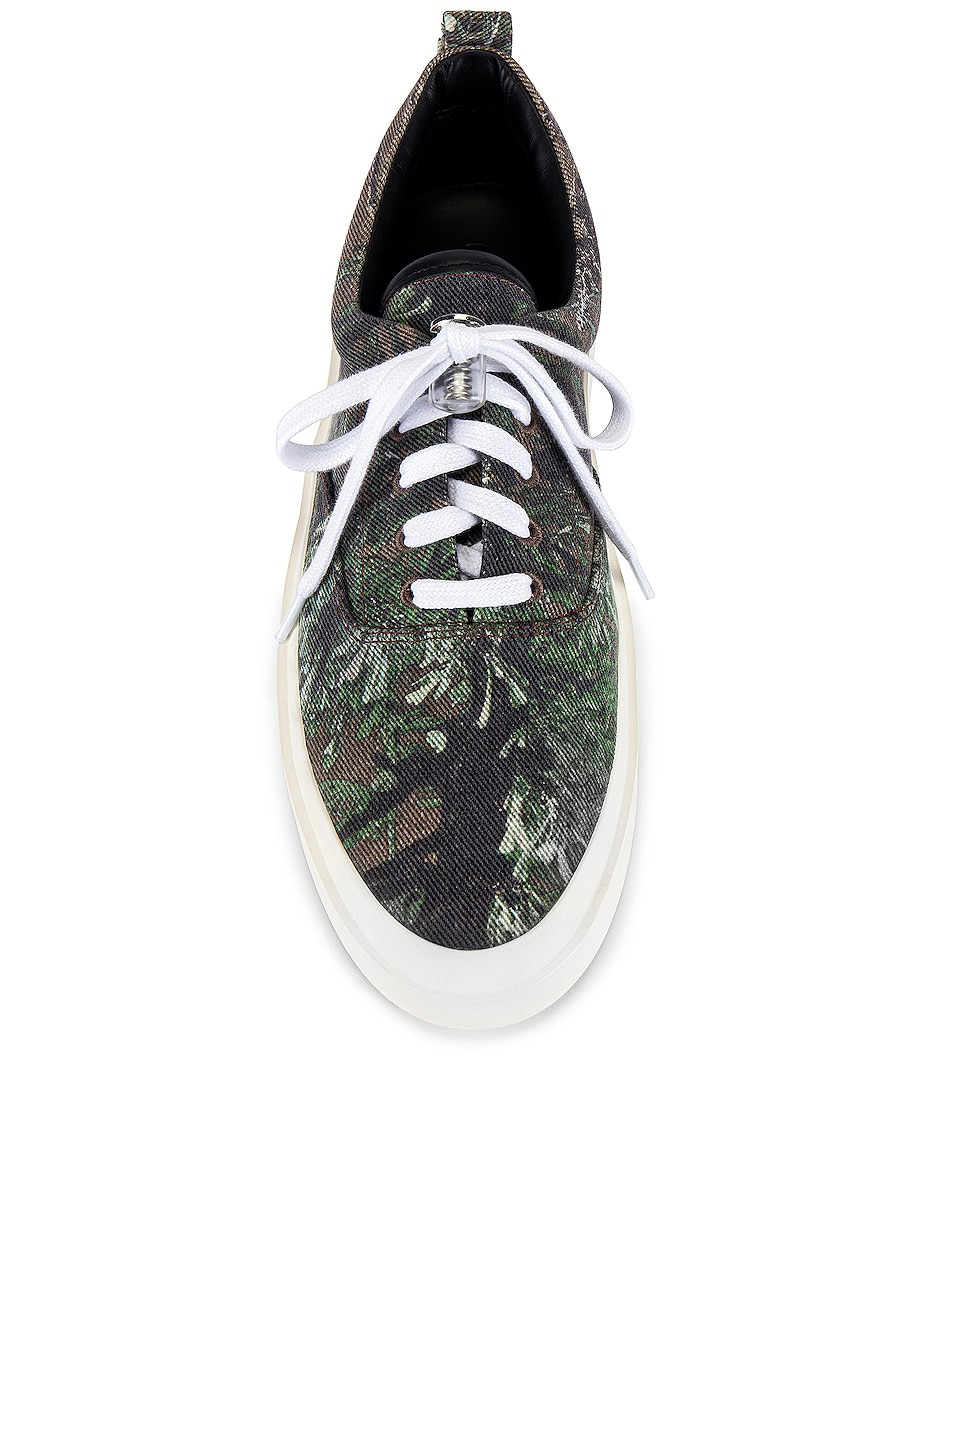 Image 4 of Fear of God 101 Lace Up Sneaker in Dark Prairie Ghost Camo